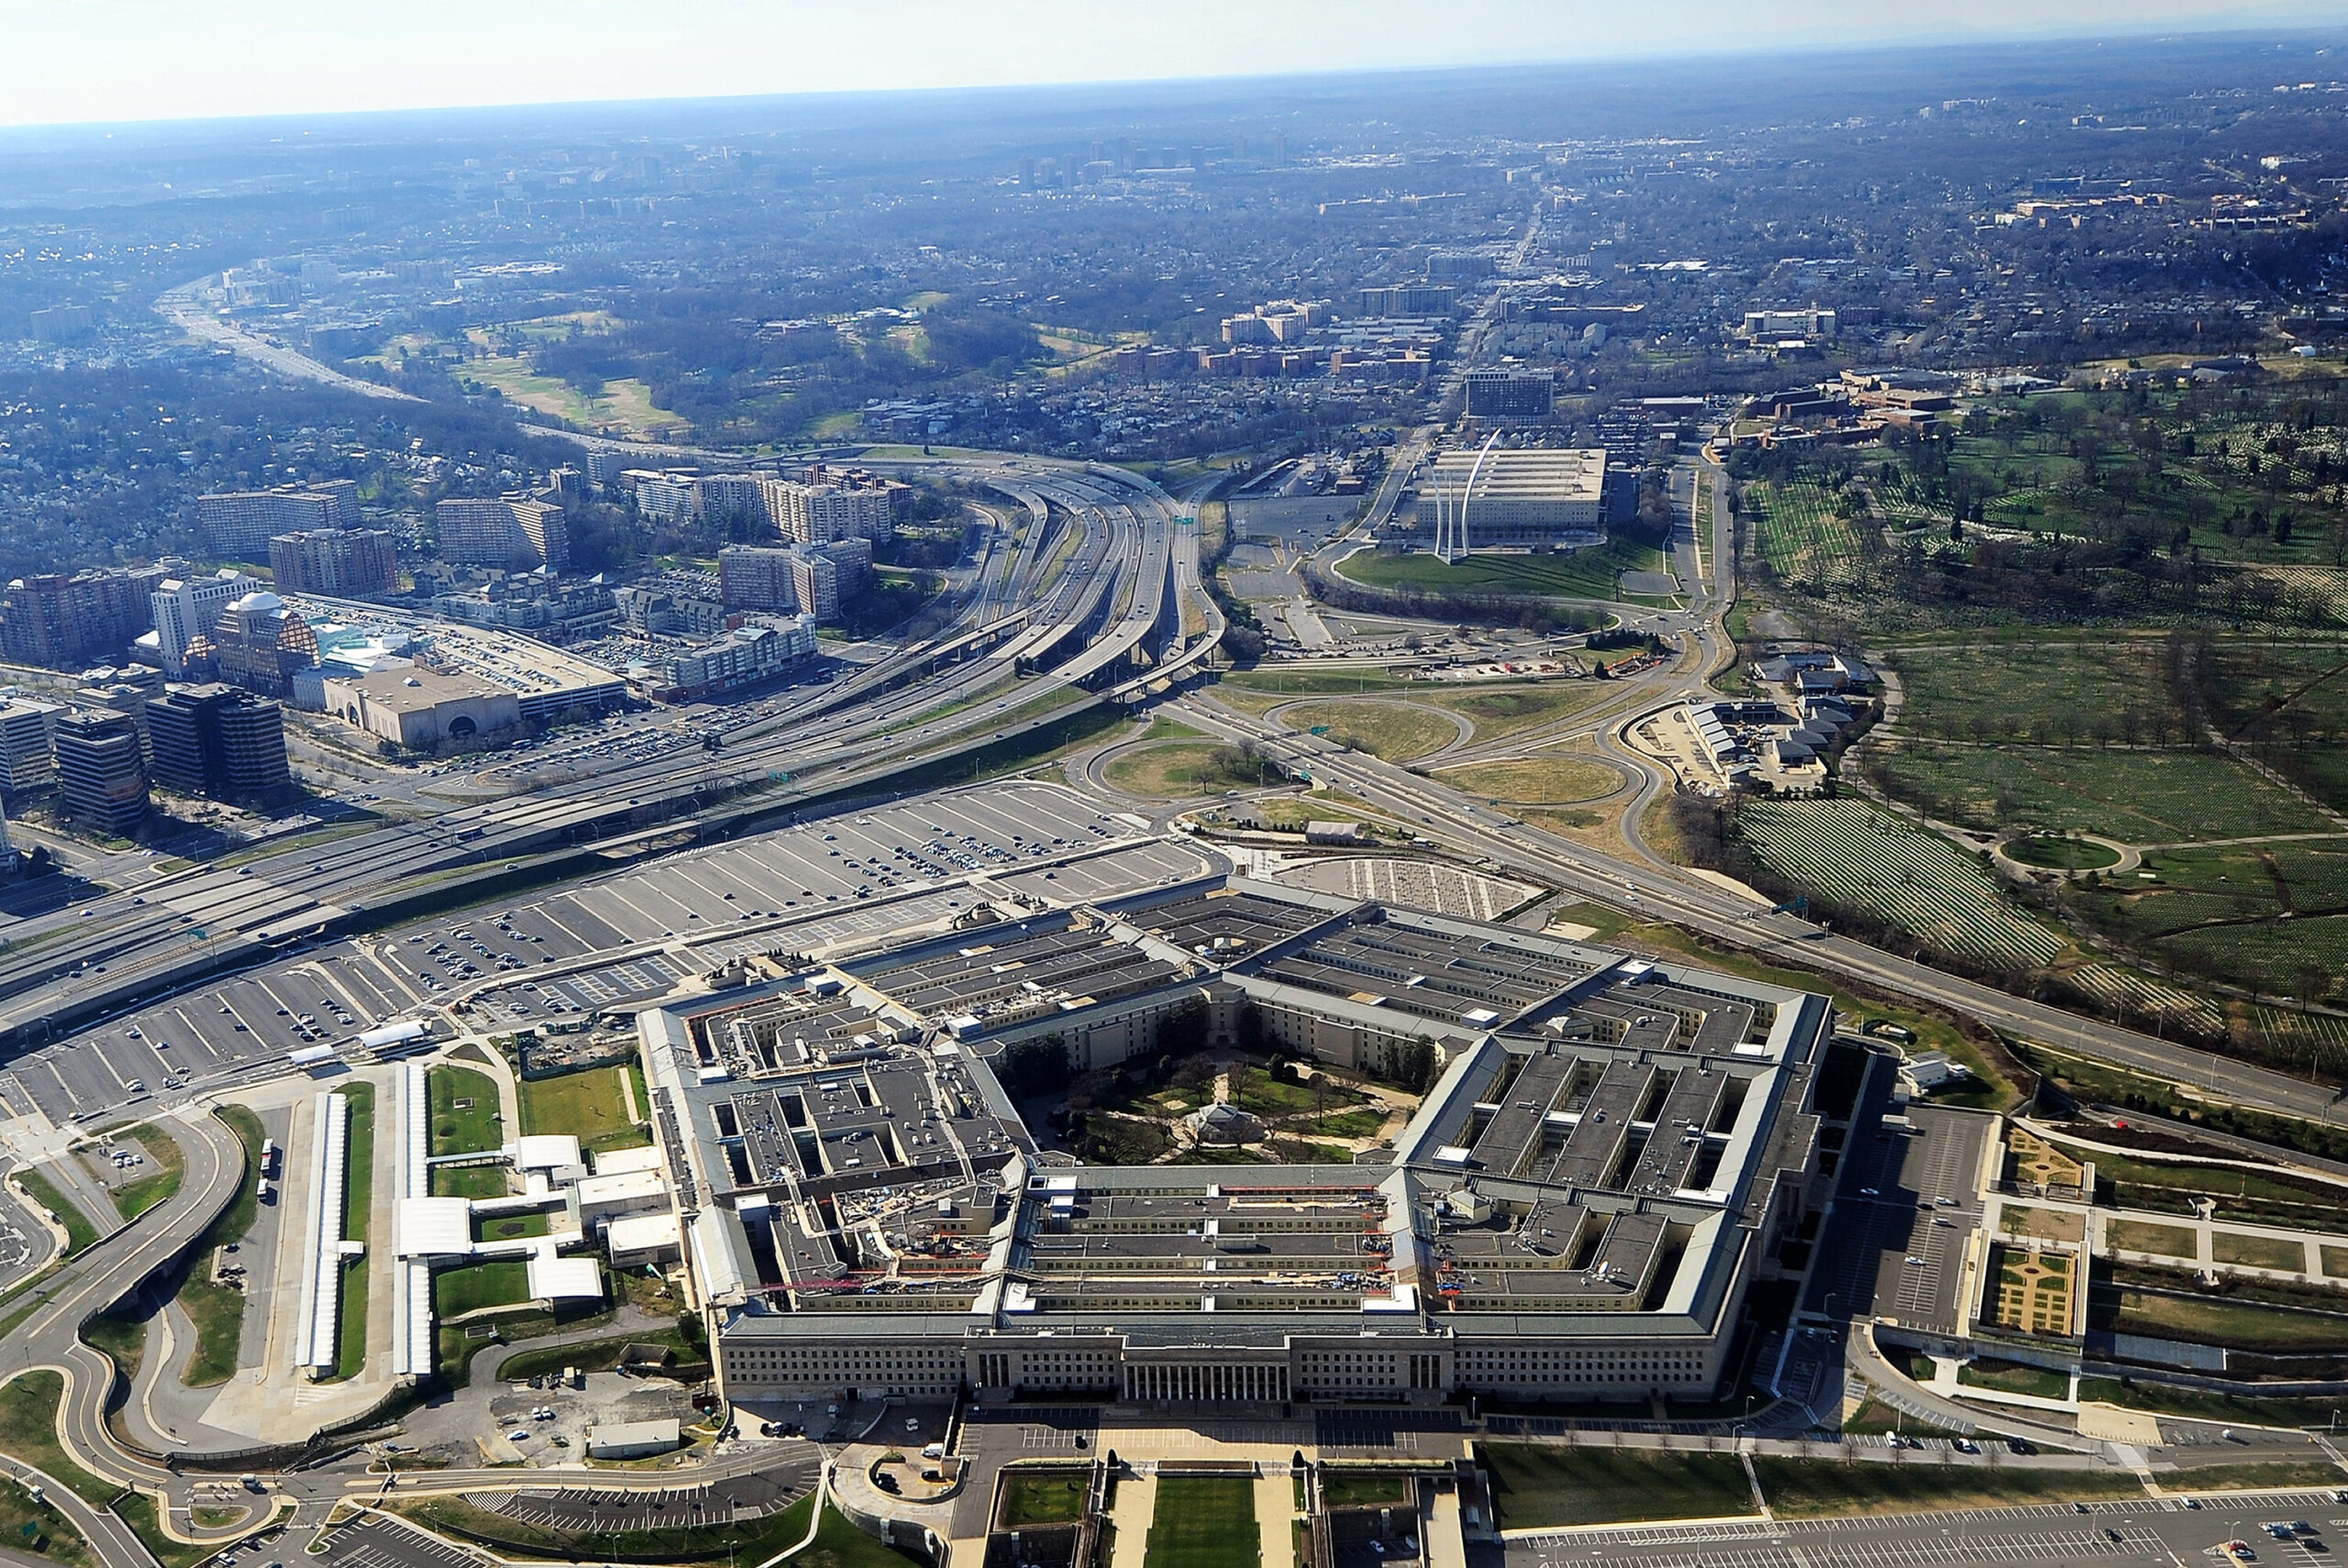 <i>STAFF/AFP/Getty Images</i><br/>The House voted to approve the National Defense Authorization Act for fiscal year 2022 with wide bipartisan support.